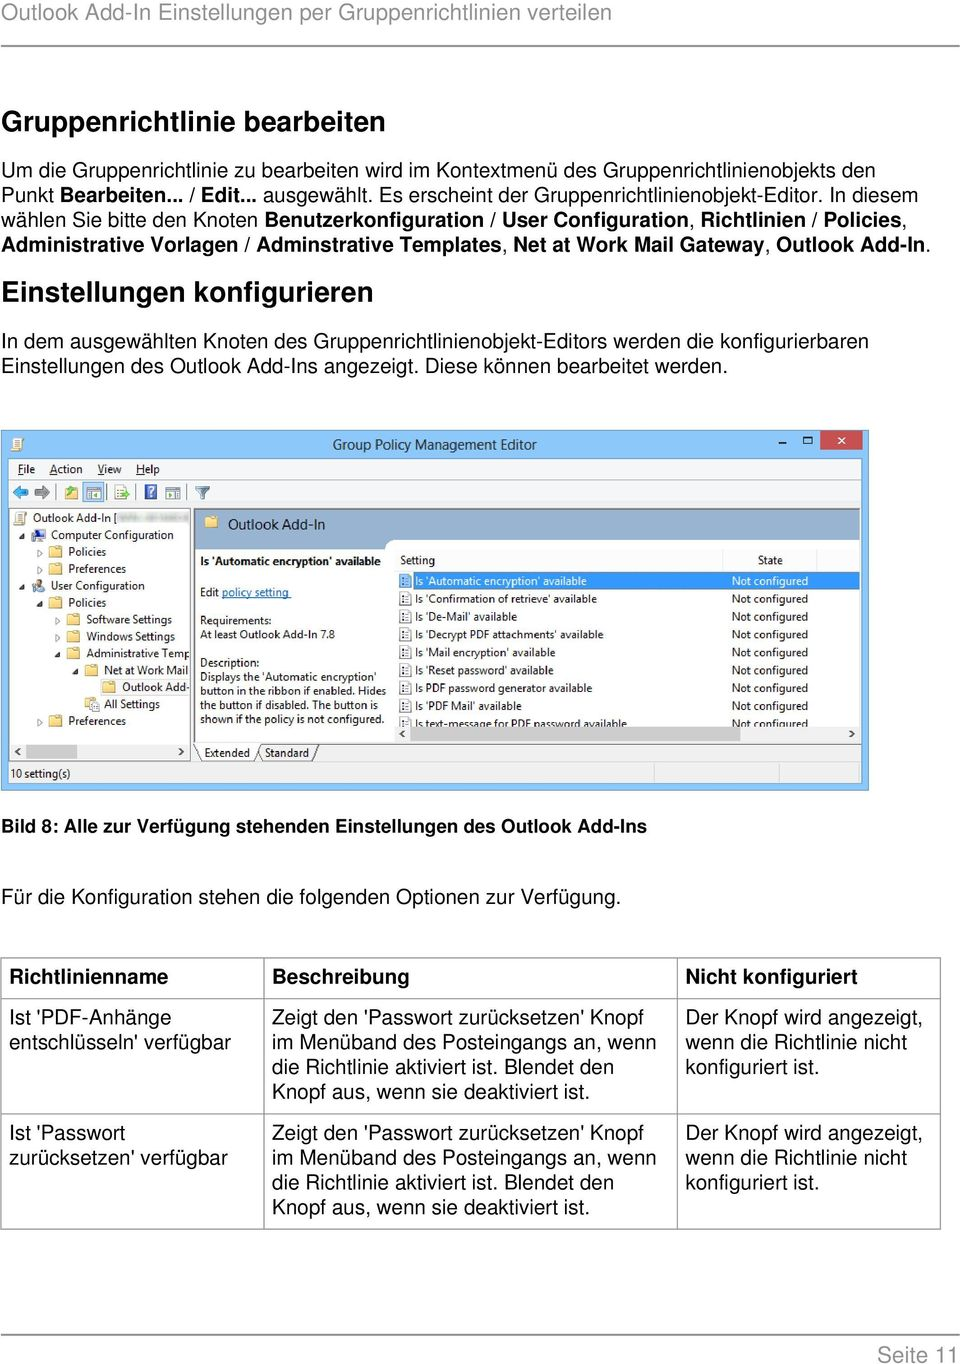 In diesem wählen Sie bitte den Knoten Benutzerkonfiguration / User Configuration, Richtlinien / Policies, Administrative Vorlagen / Adminstrative Templates, Net at Work Mail Gateway, Outlook Add-In.